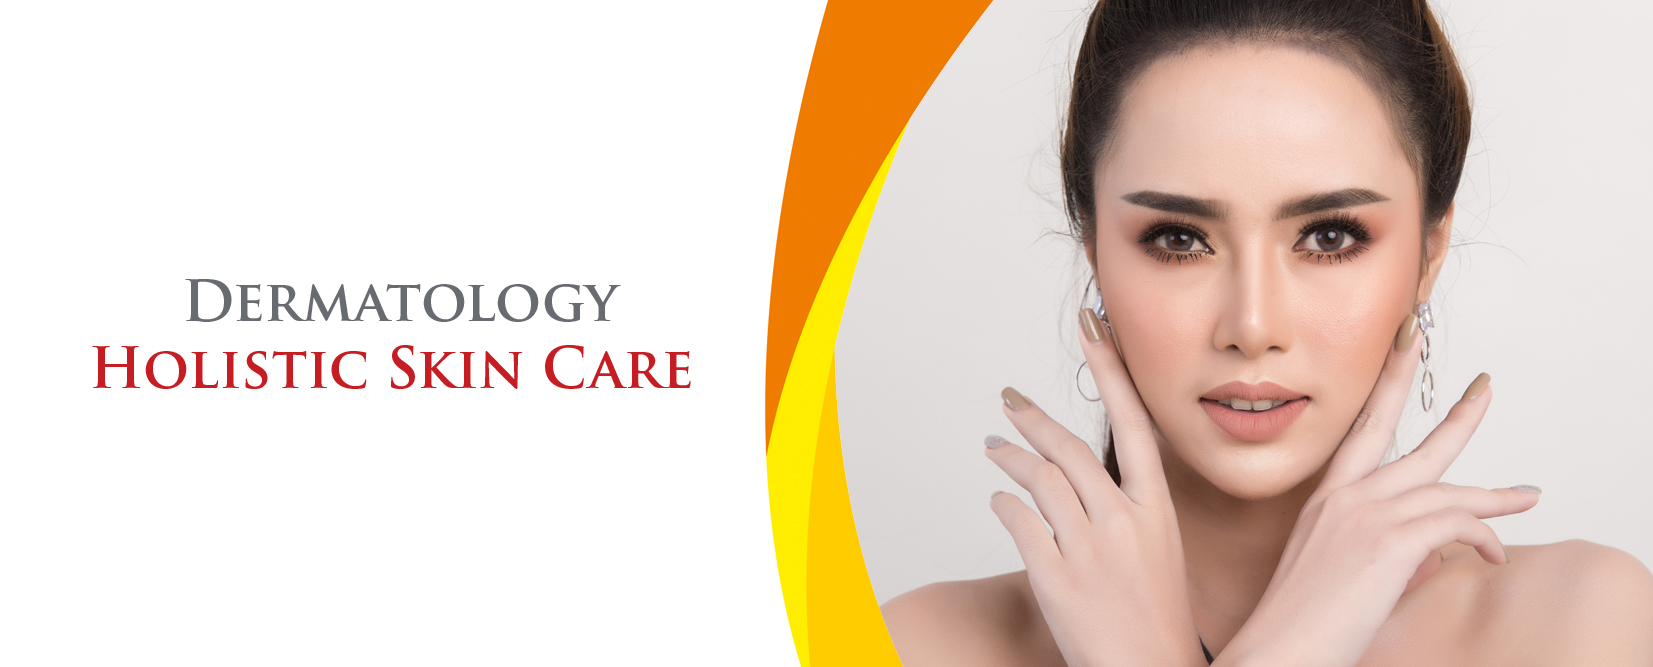 Best skin care hospitals in hdyerabad